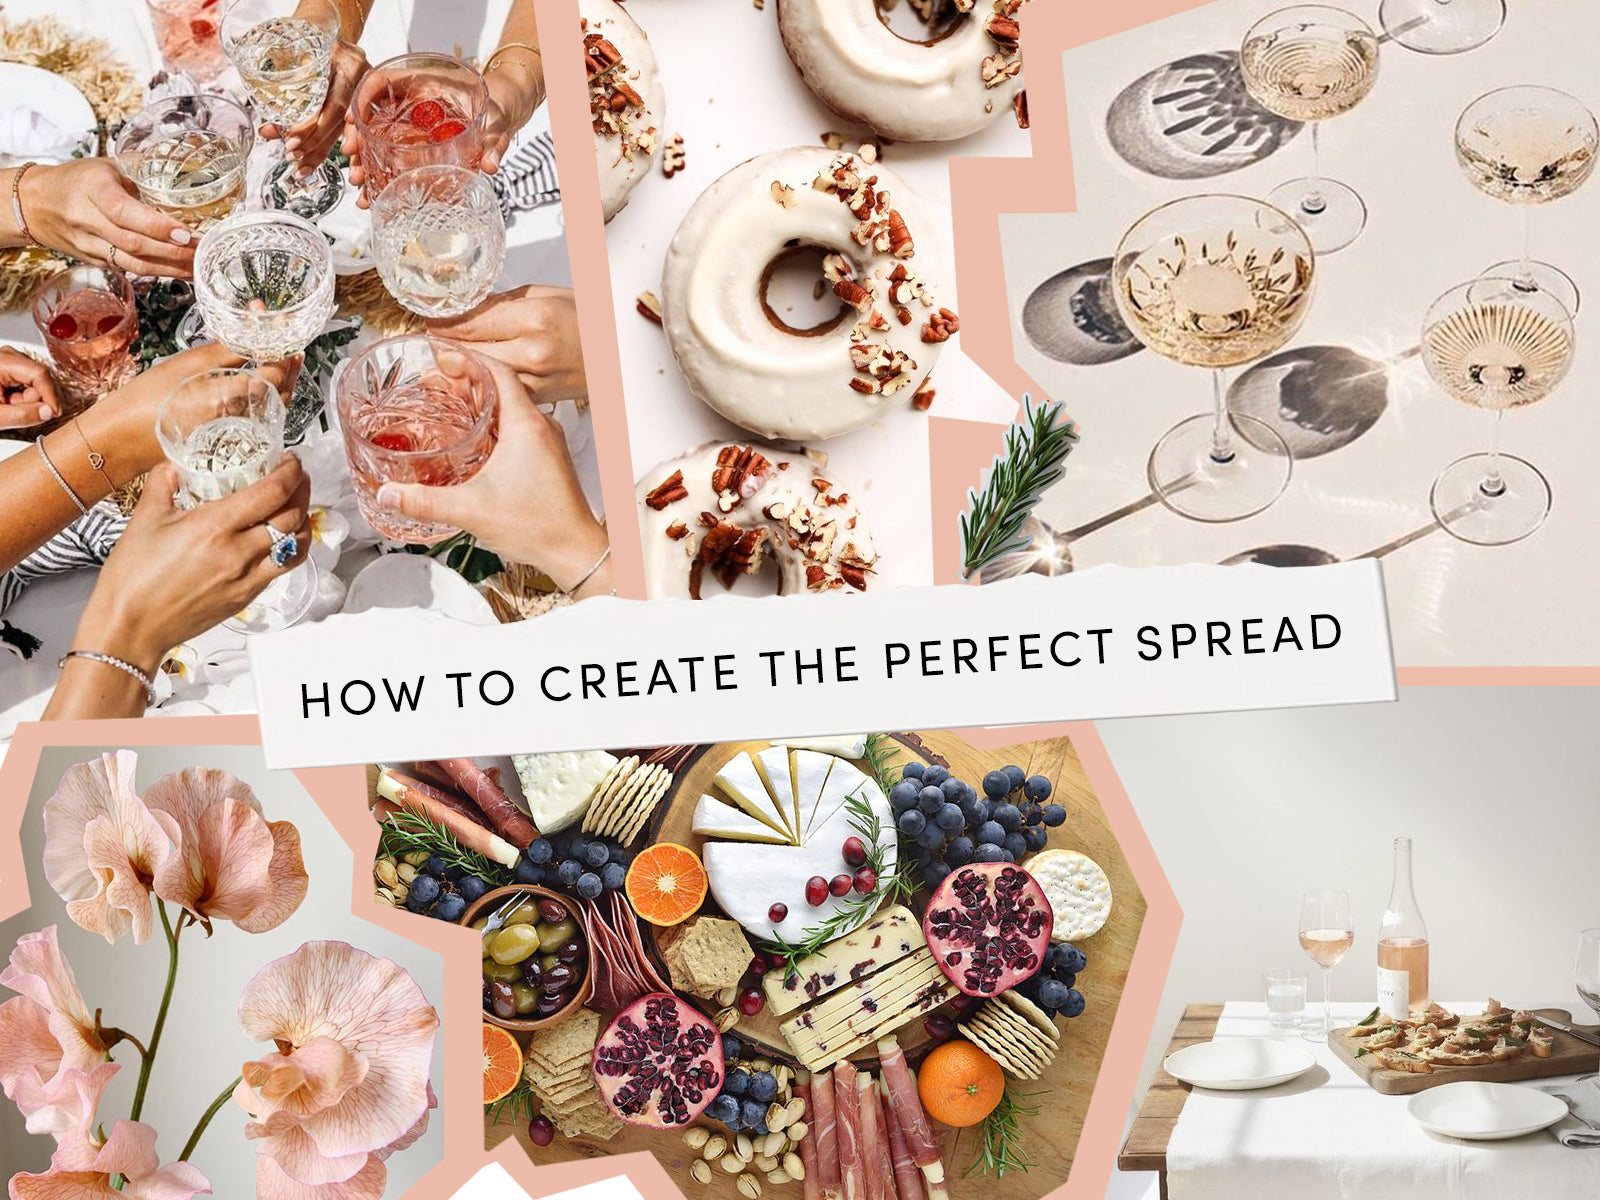 How to create an aperitif spread